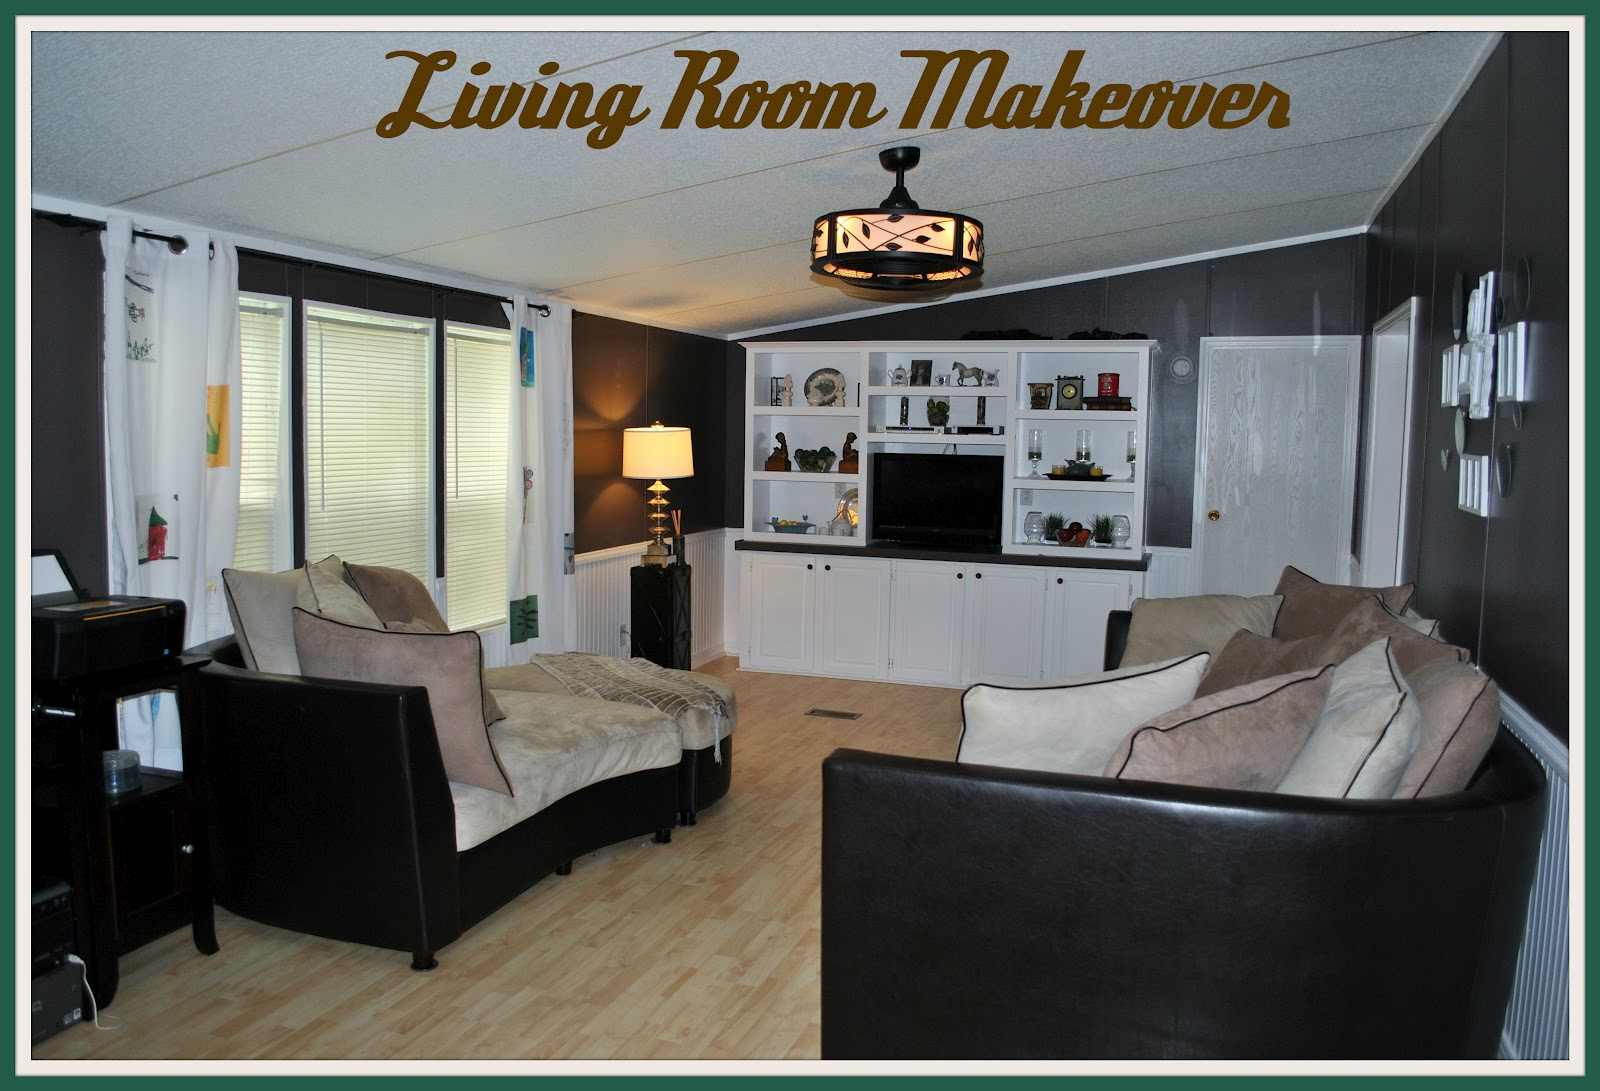 Life with 4 boys living room makeover before and after for Living room makeover